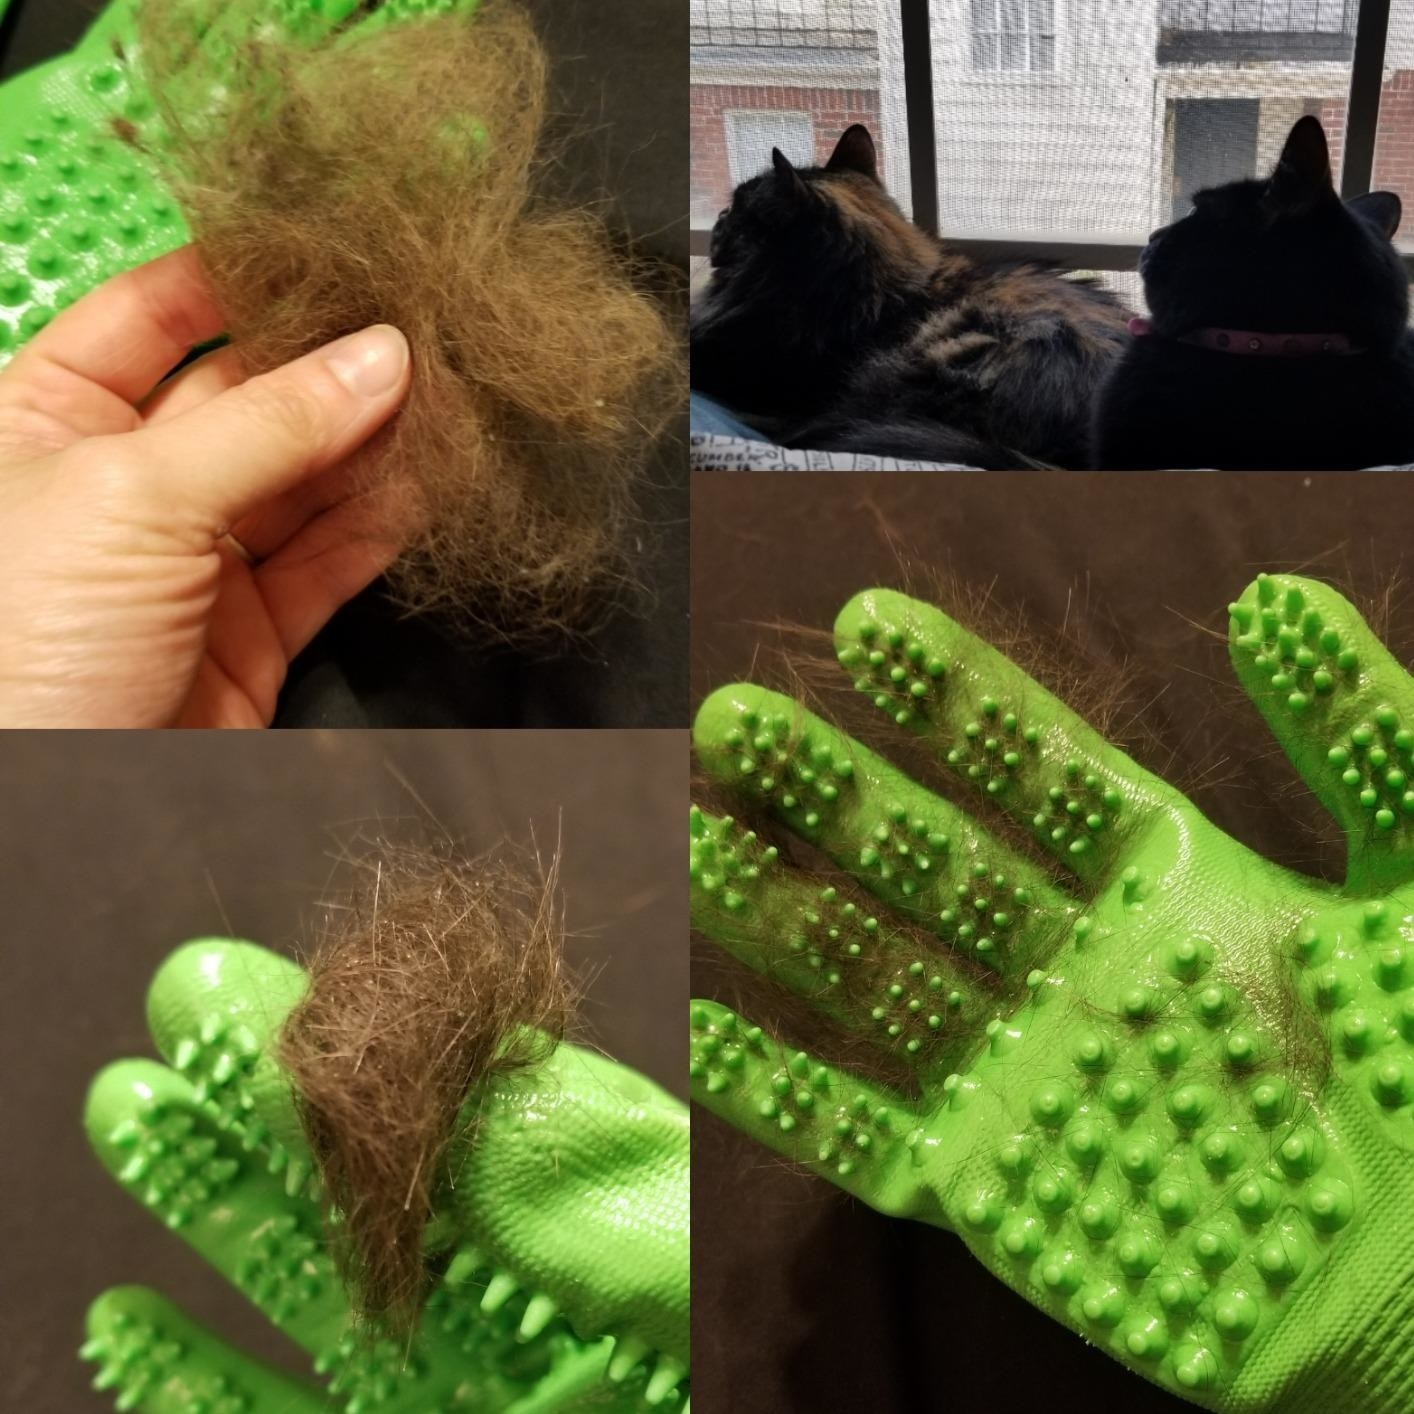 A demonstration of the cat hair the gloves can remove and how easy it is to get the hair off the gloves